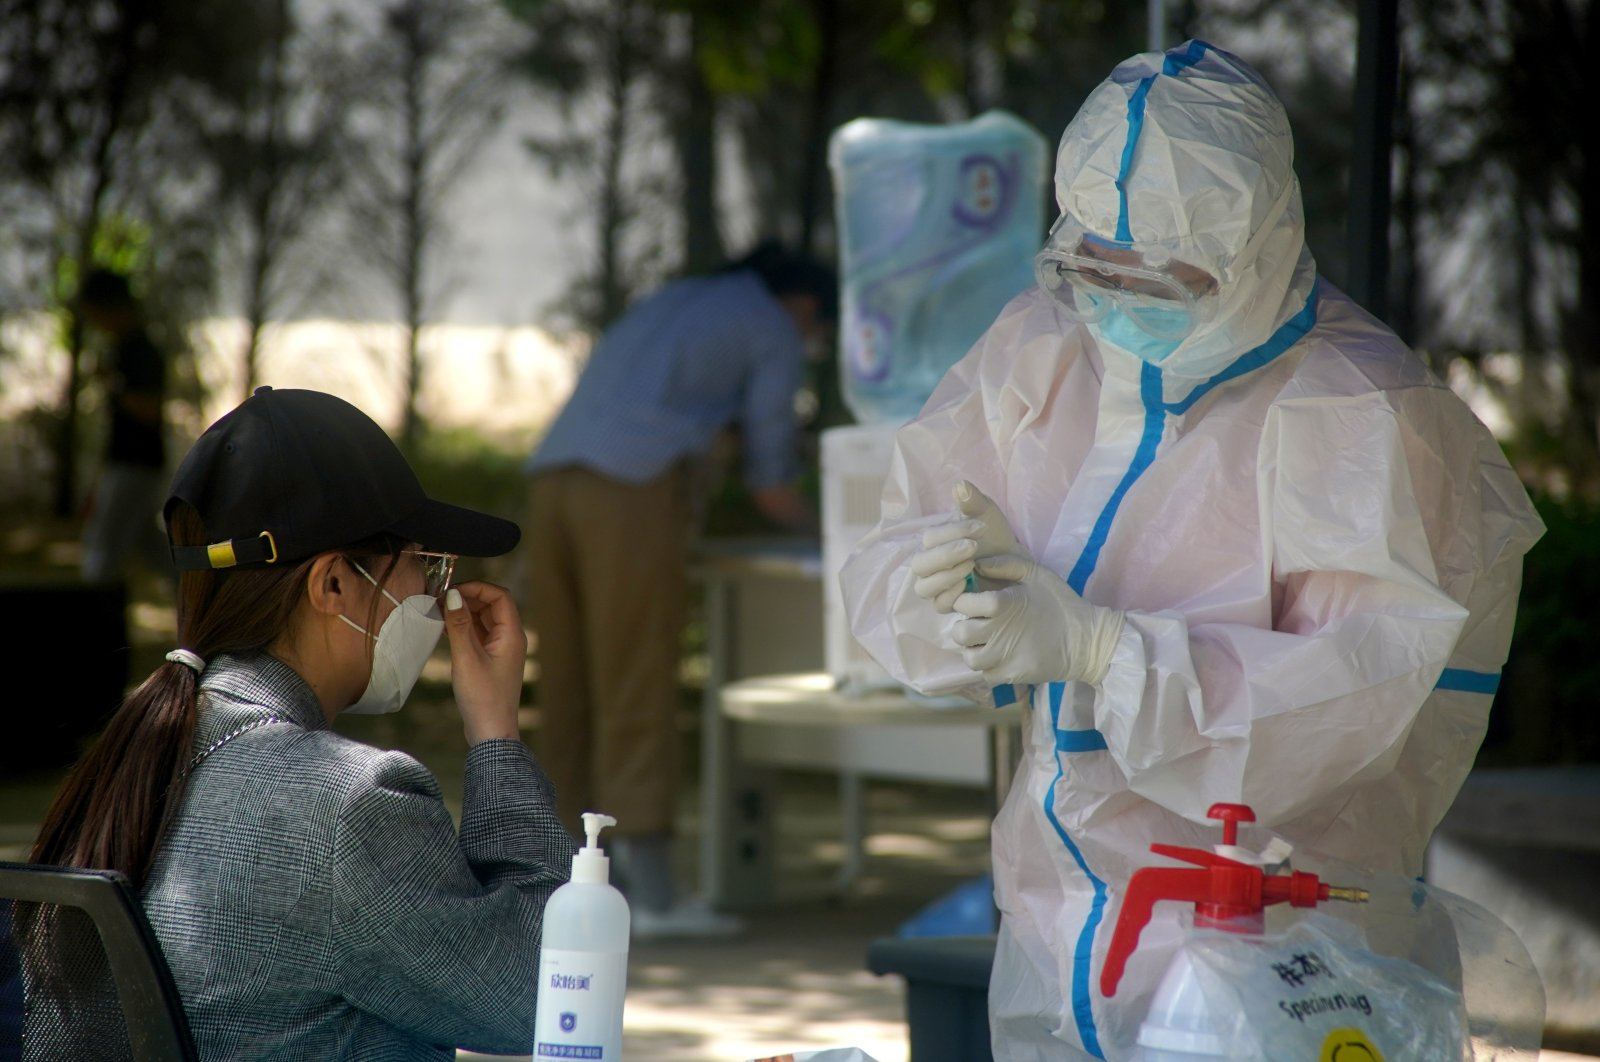 A medical worker wearing protective suit collects the sample after conducting nucleic acid testings for a woman, Beijing, May 18, 2020. (EPA Photo)